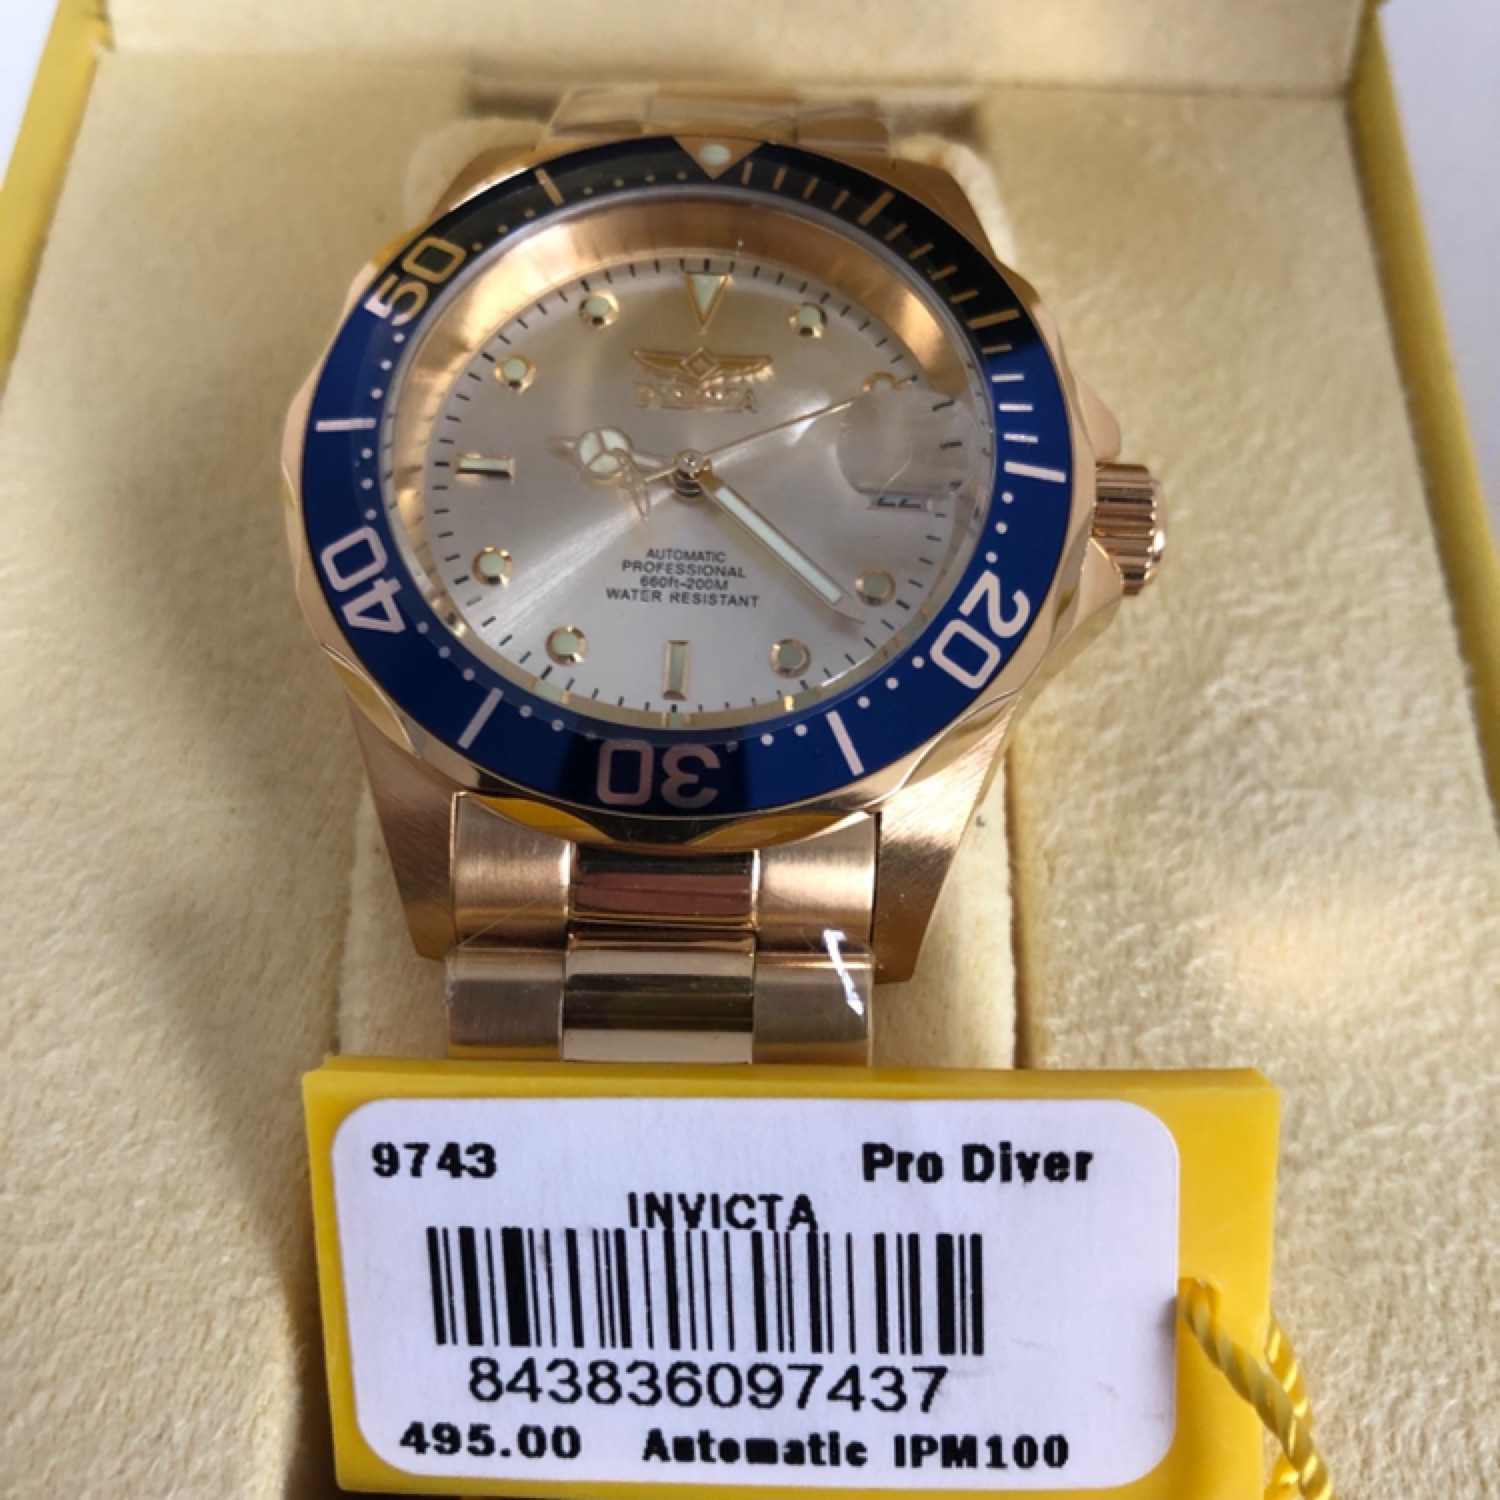 Invicta Pro Series Limited Edition Watch